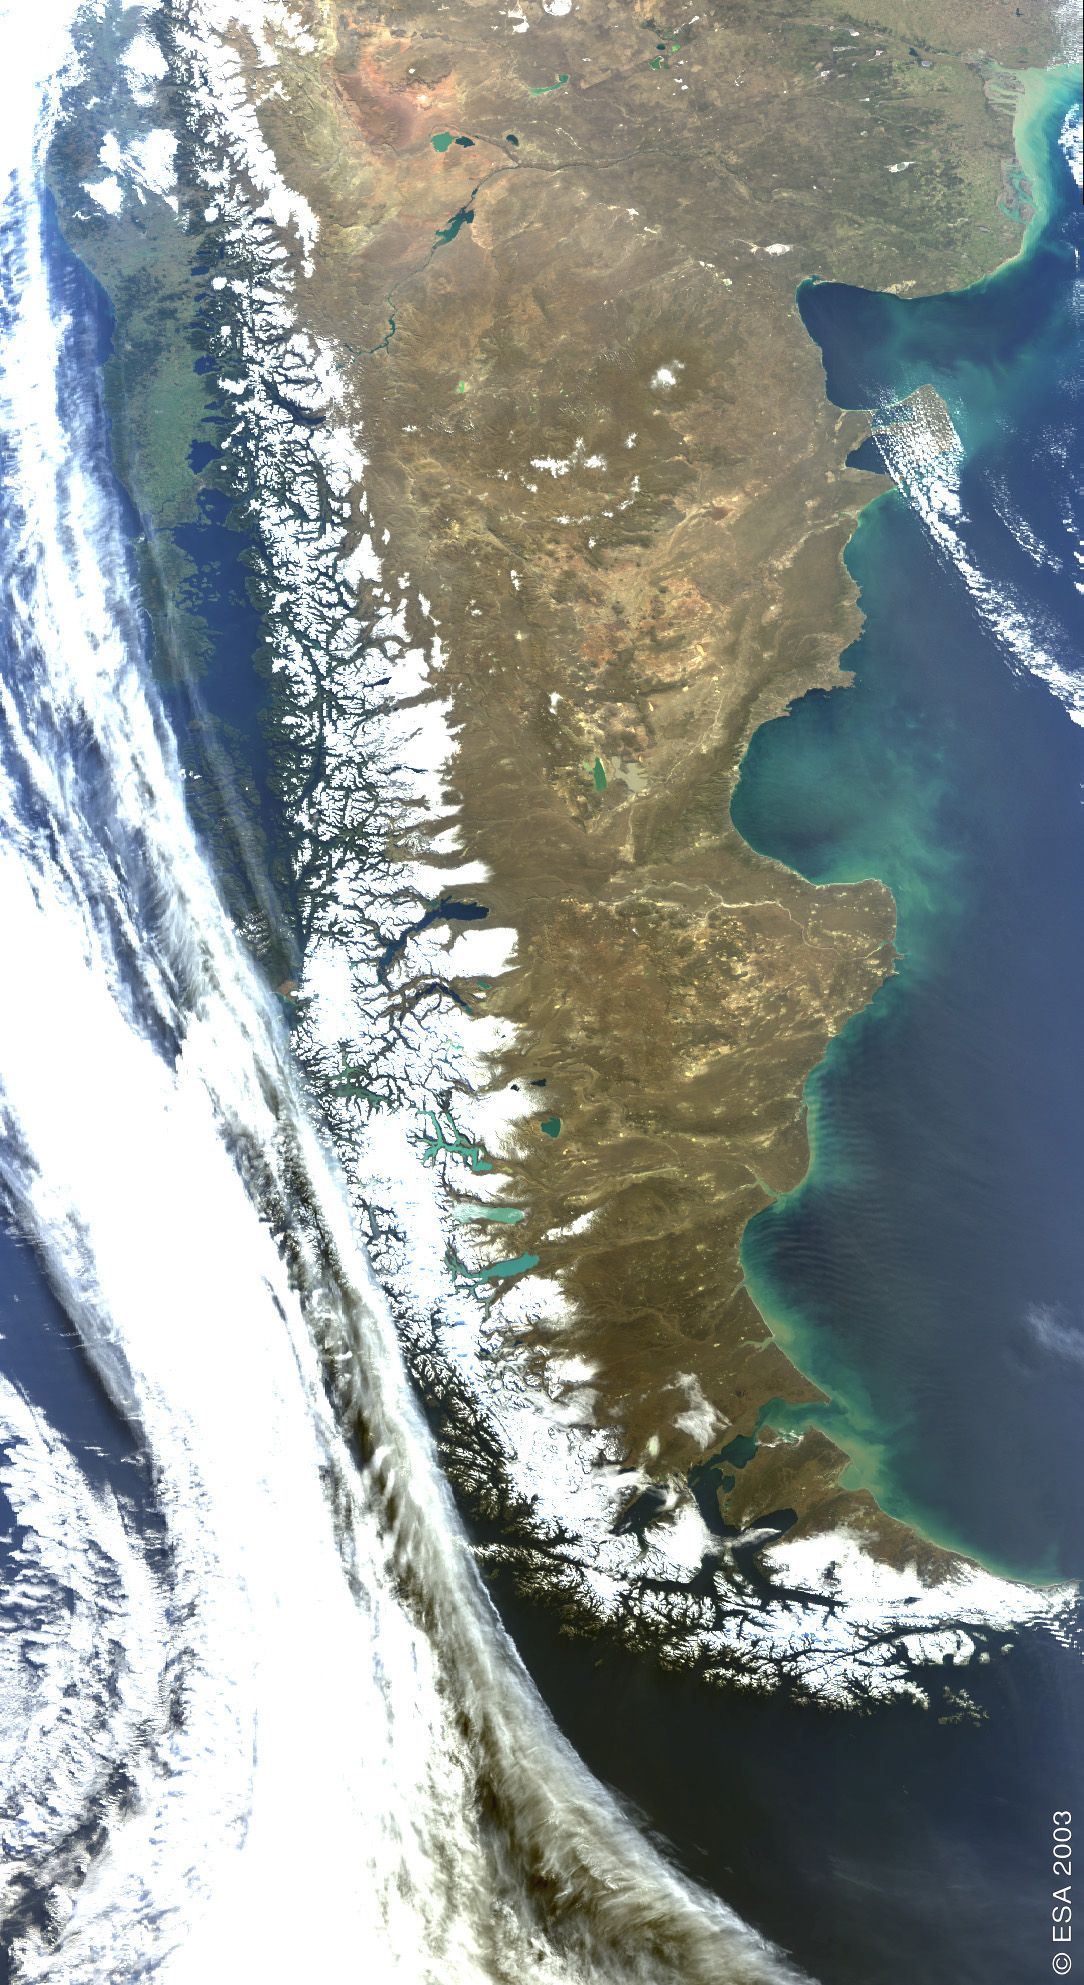 Satellite image photo of patagonia argentina imagenes satellite image photo of patagonia argentina gumiabroncs Image collections